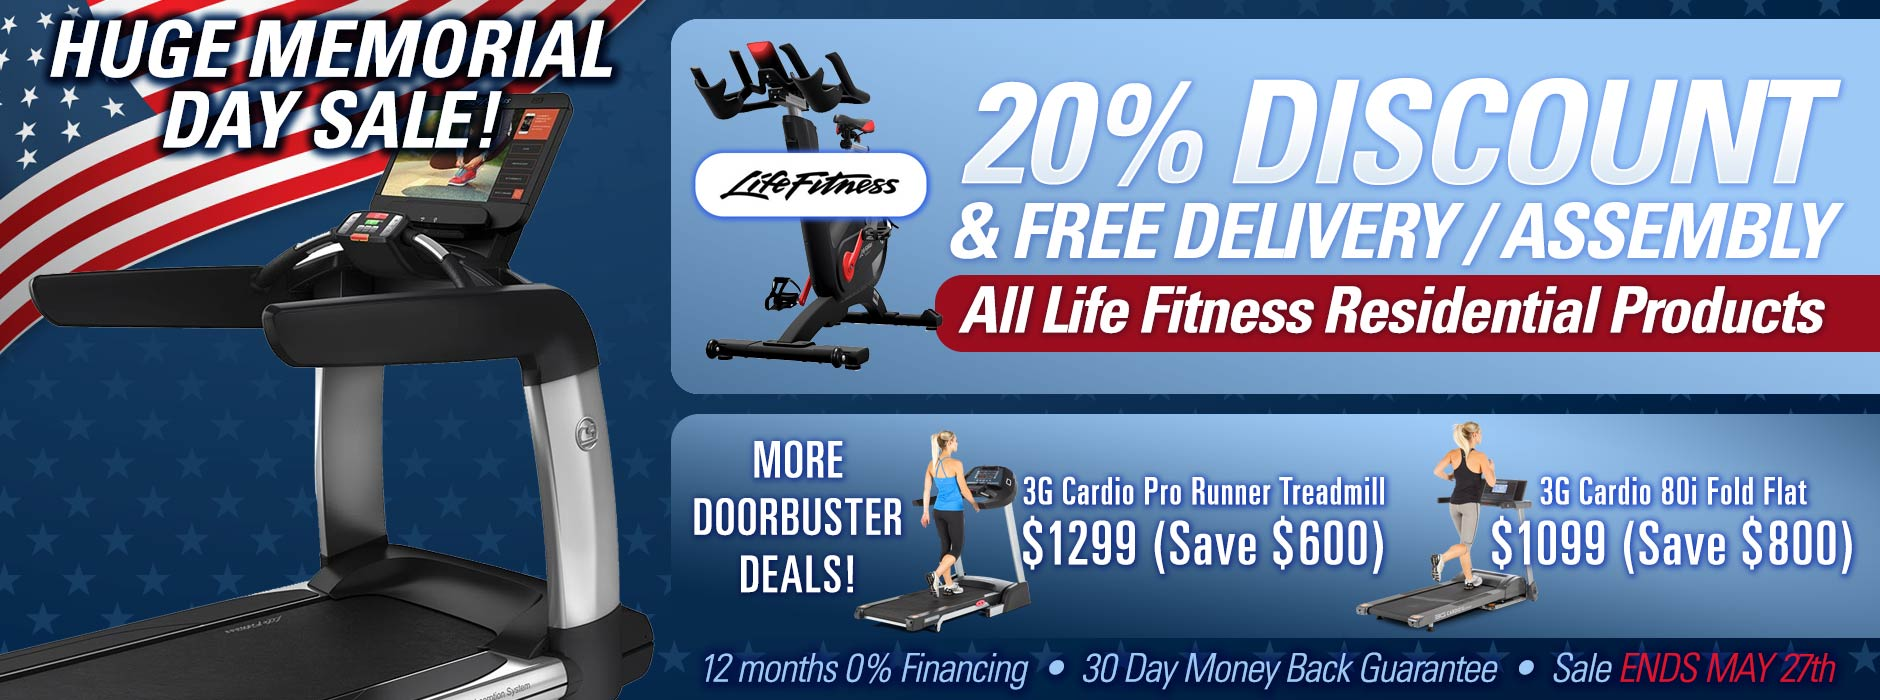 Life Fitness Super Sale Memorial Day Sale